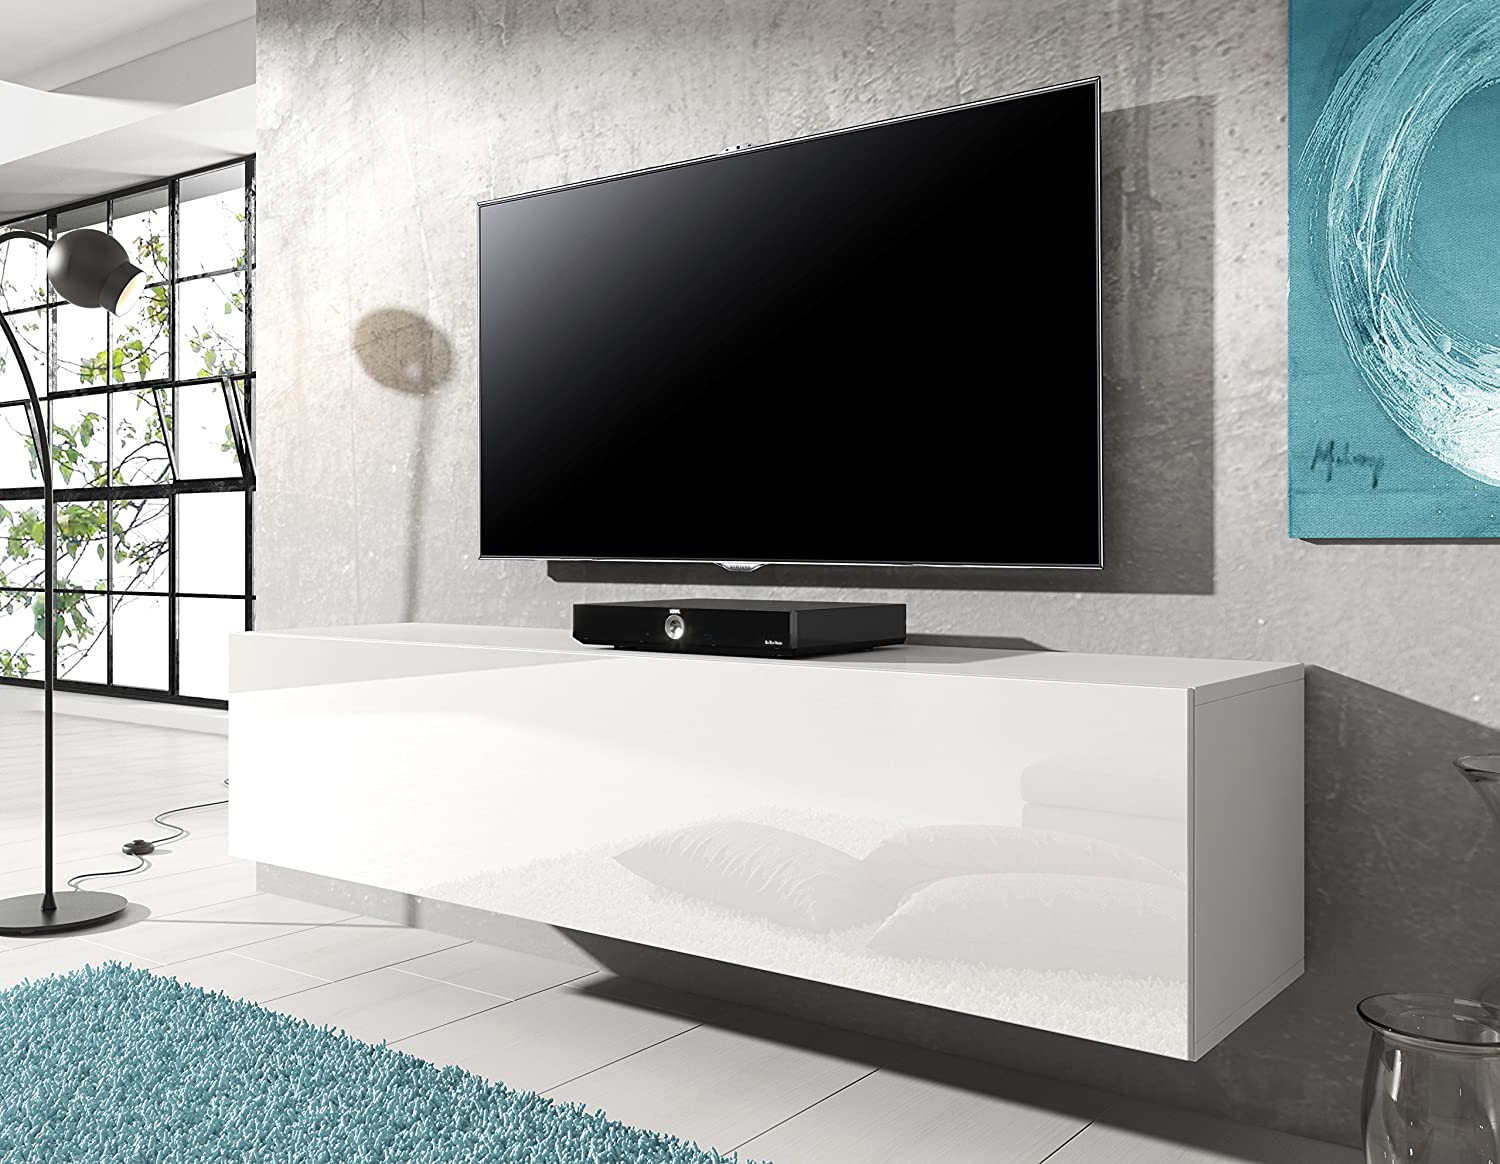 Meuble Tv Suspendu Rocco 140 Cm Blanc Mat Frontal Avec Brillant  # Meuble Tv Brillant